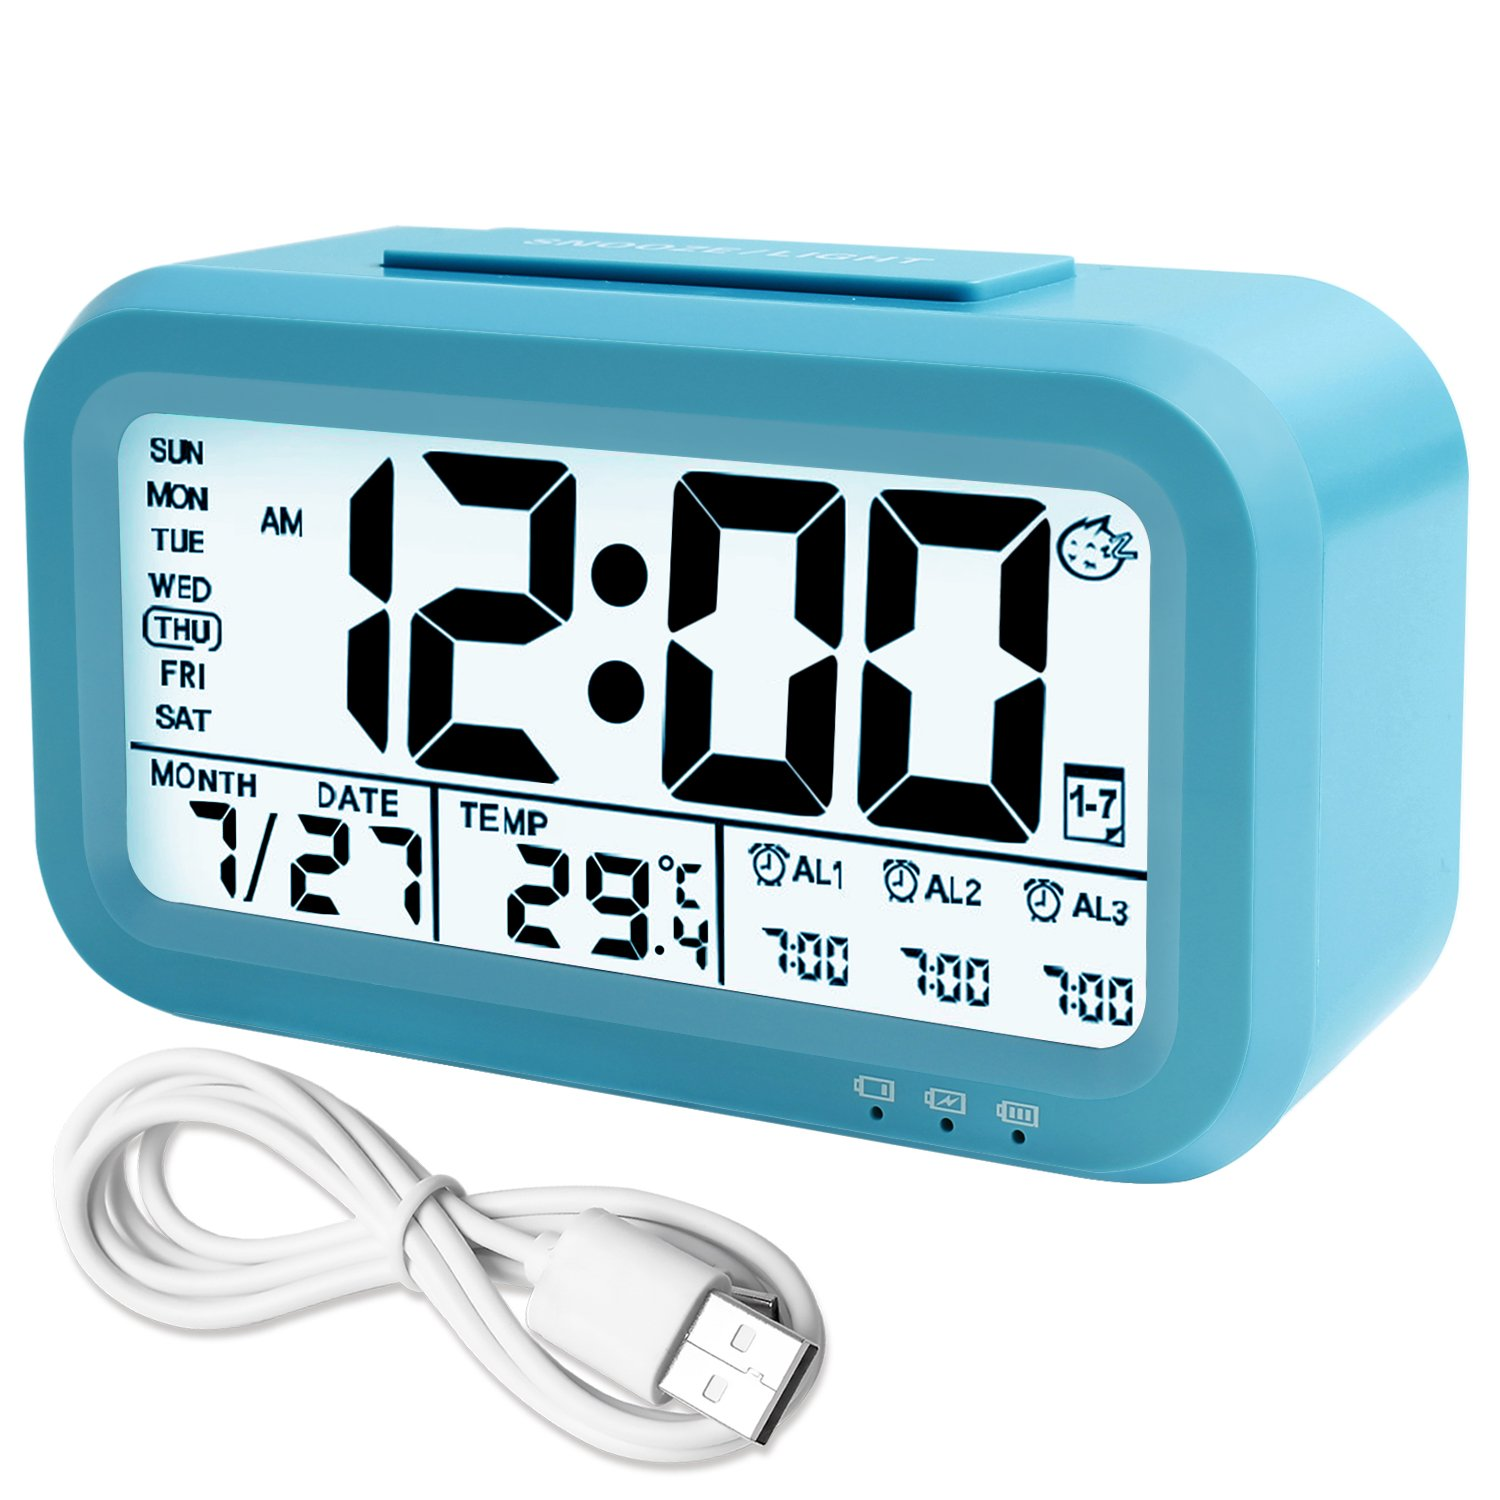 WinFong Alarm Clock, Backlight LCD Digital Alarm Clock with 3 Alarms Thermometer Calendar Large Display Smart Nightlight Soft Light Snooze, Battery Operated with USB Charger (Blue)